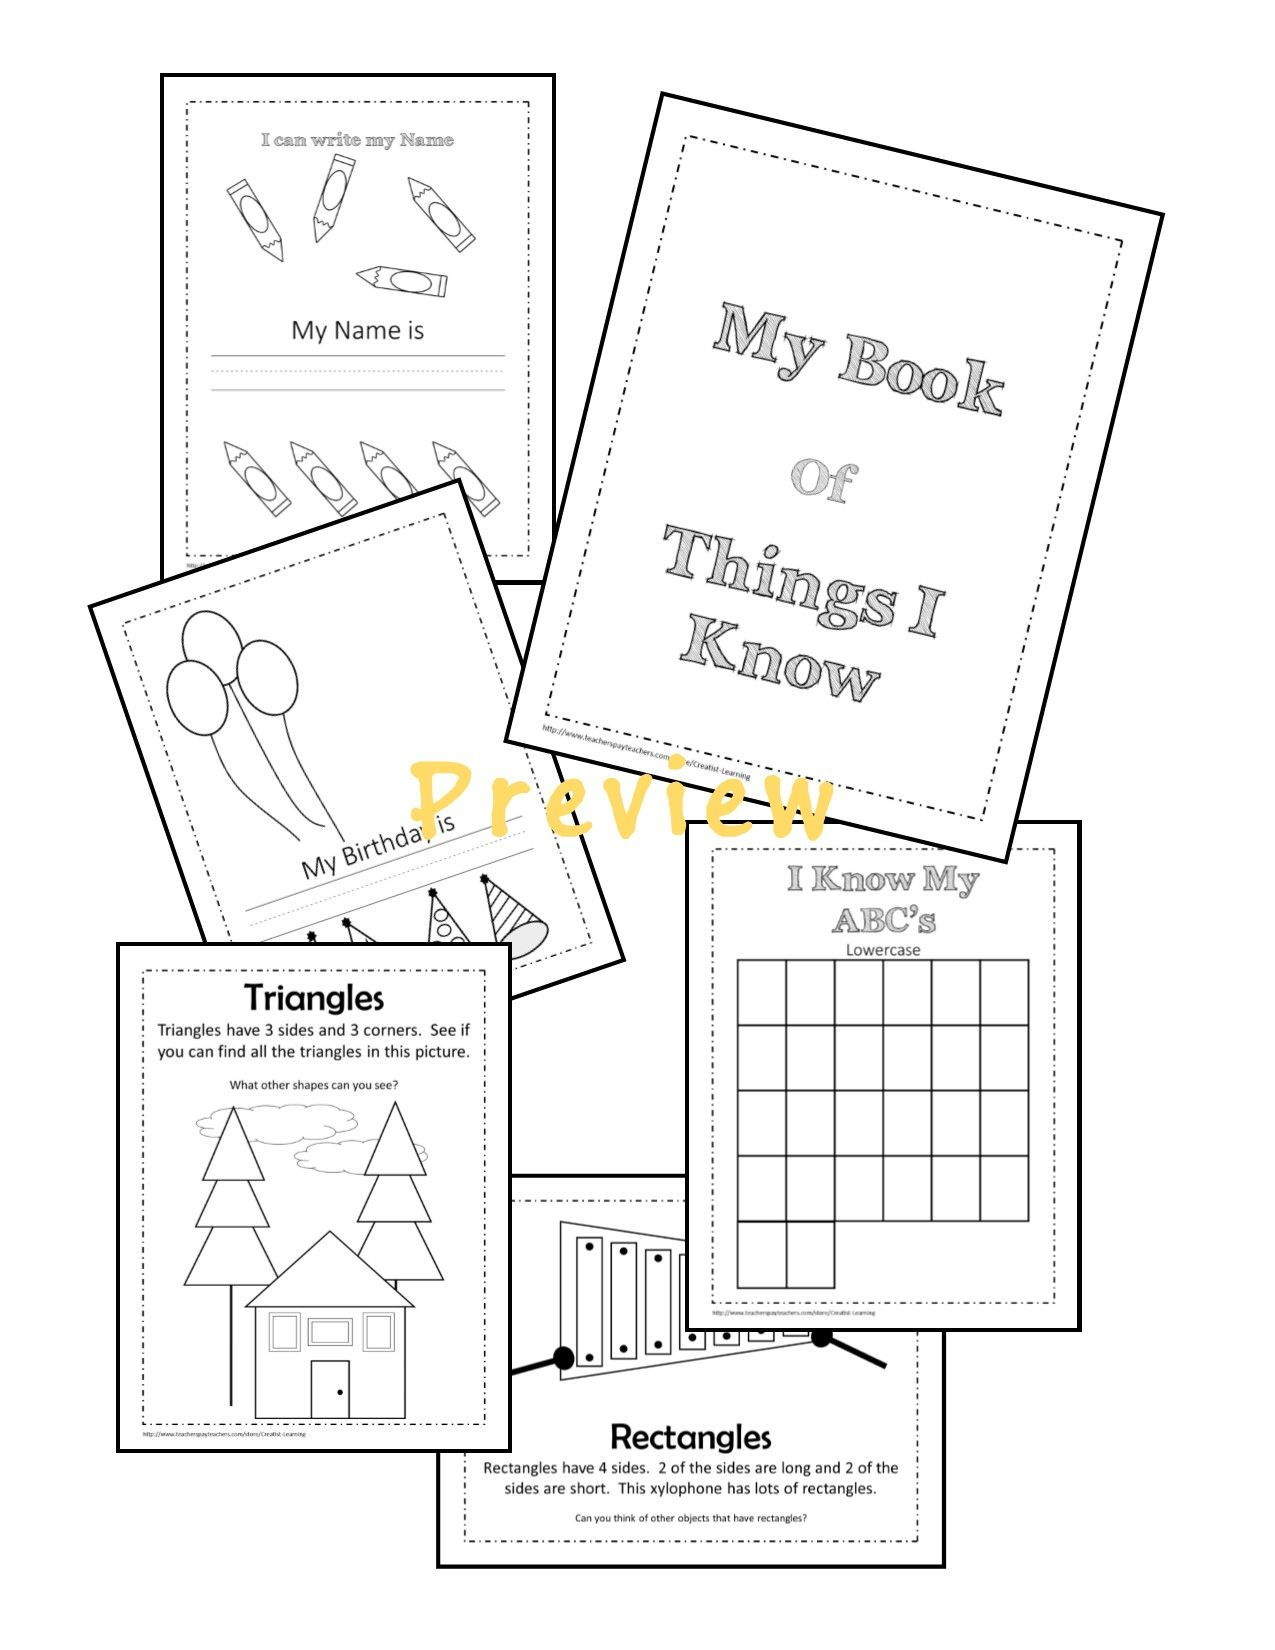 Kindergarten Printable for learning Letters, Numbers